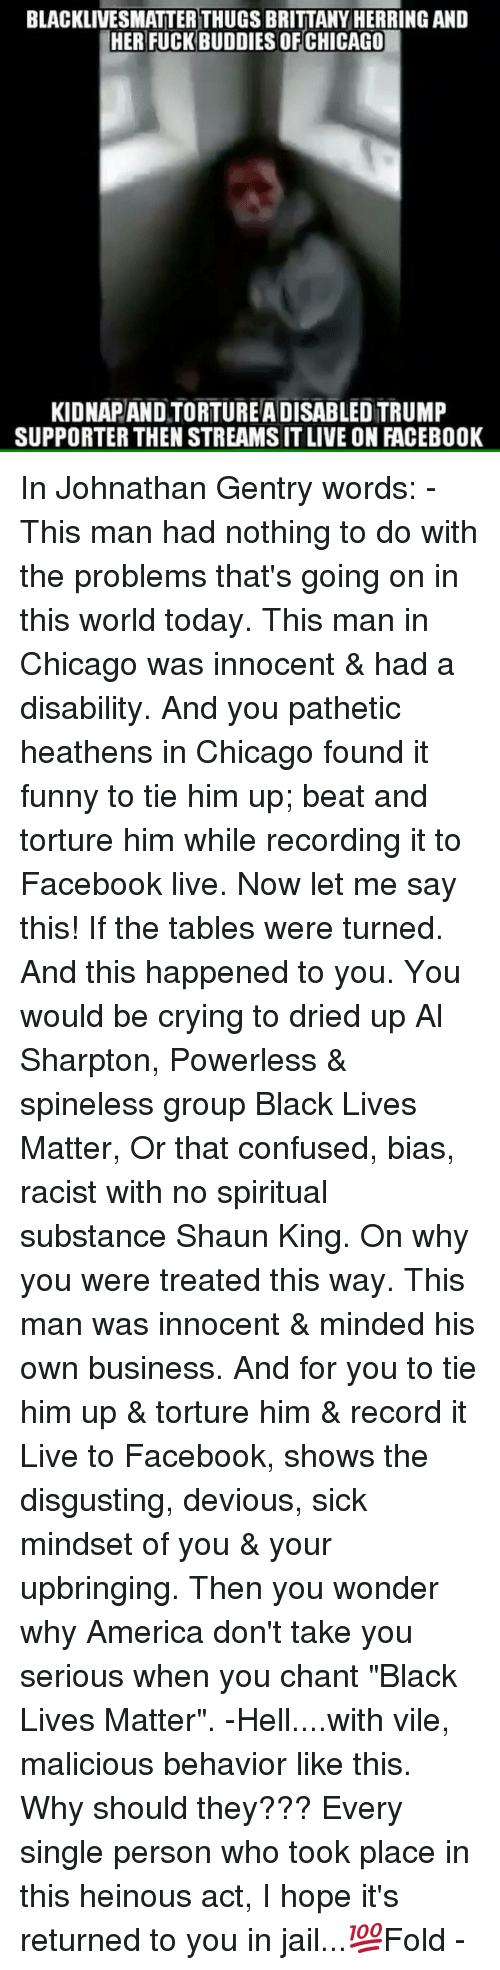 """Trump Support: BLACKLIVESMATTERTHUGS BRITTANY HERRING AND  HER FUCK BUDDIES OF CHICAGO  KIDNAPANDTORTUREADISABLED TRUMP  SUPPORTER THEN STREAMSITLIVE ON FACEBOOK In Johnathan Gentry words: - This man had nothing to do with the problems that's going on in this world today. This man in Chicago was innocent & had a disability. And you pathetic heathens in Chicago found it funny to tie him up; beat and torture him while recording it to Facebook live. Now let me say this! If the tables were turned. And this happened to you. You would be crying to dried up Al Sharpton, Powerless & spineless group Black Lives Matter, Or that confused, bias, racist with no spiritual substance Shaun King. On why you were treated this way. This man was innocent & minded his own business. And for you to tie him up & torture him & record it Live to Facebook, shows the disgusting, devious, sick mindset of you & your upbringing. Then you wonder why America don't take you serious when you chant """"Black Lives Matter"""". -Hell....with vile, malicious behavior like this. Why should they??? Every single person who took place in this heinous act, I hope it's returned to you in jail...💯Fold -"""